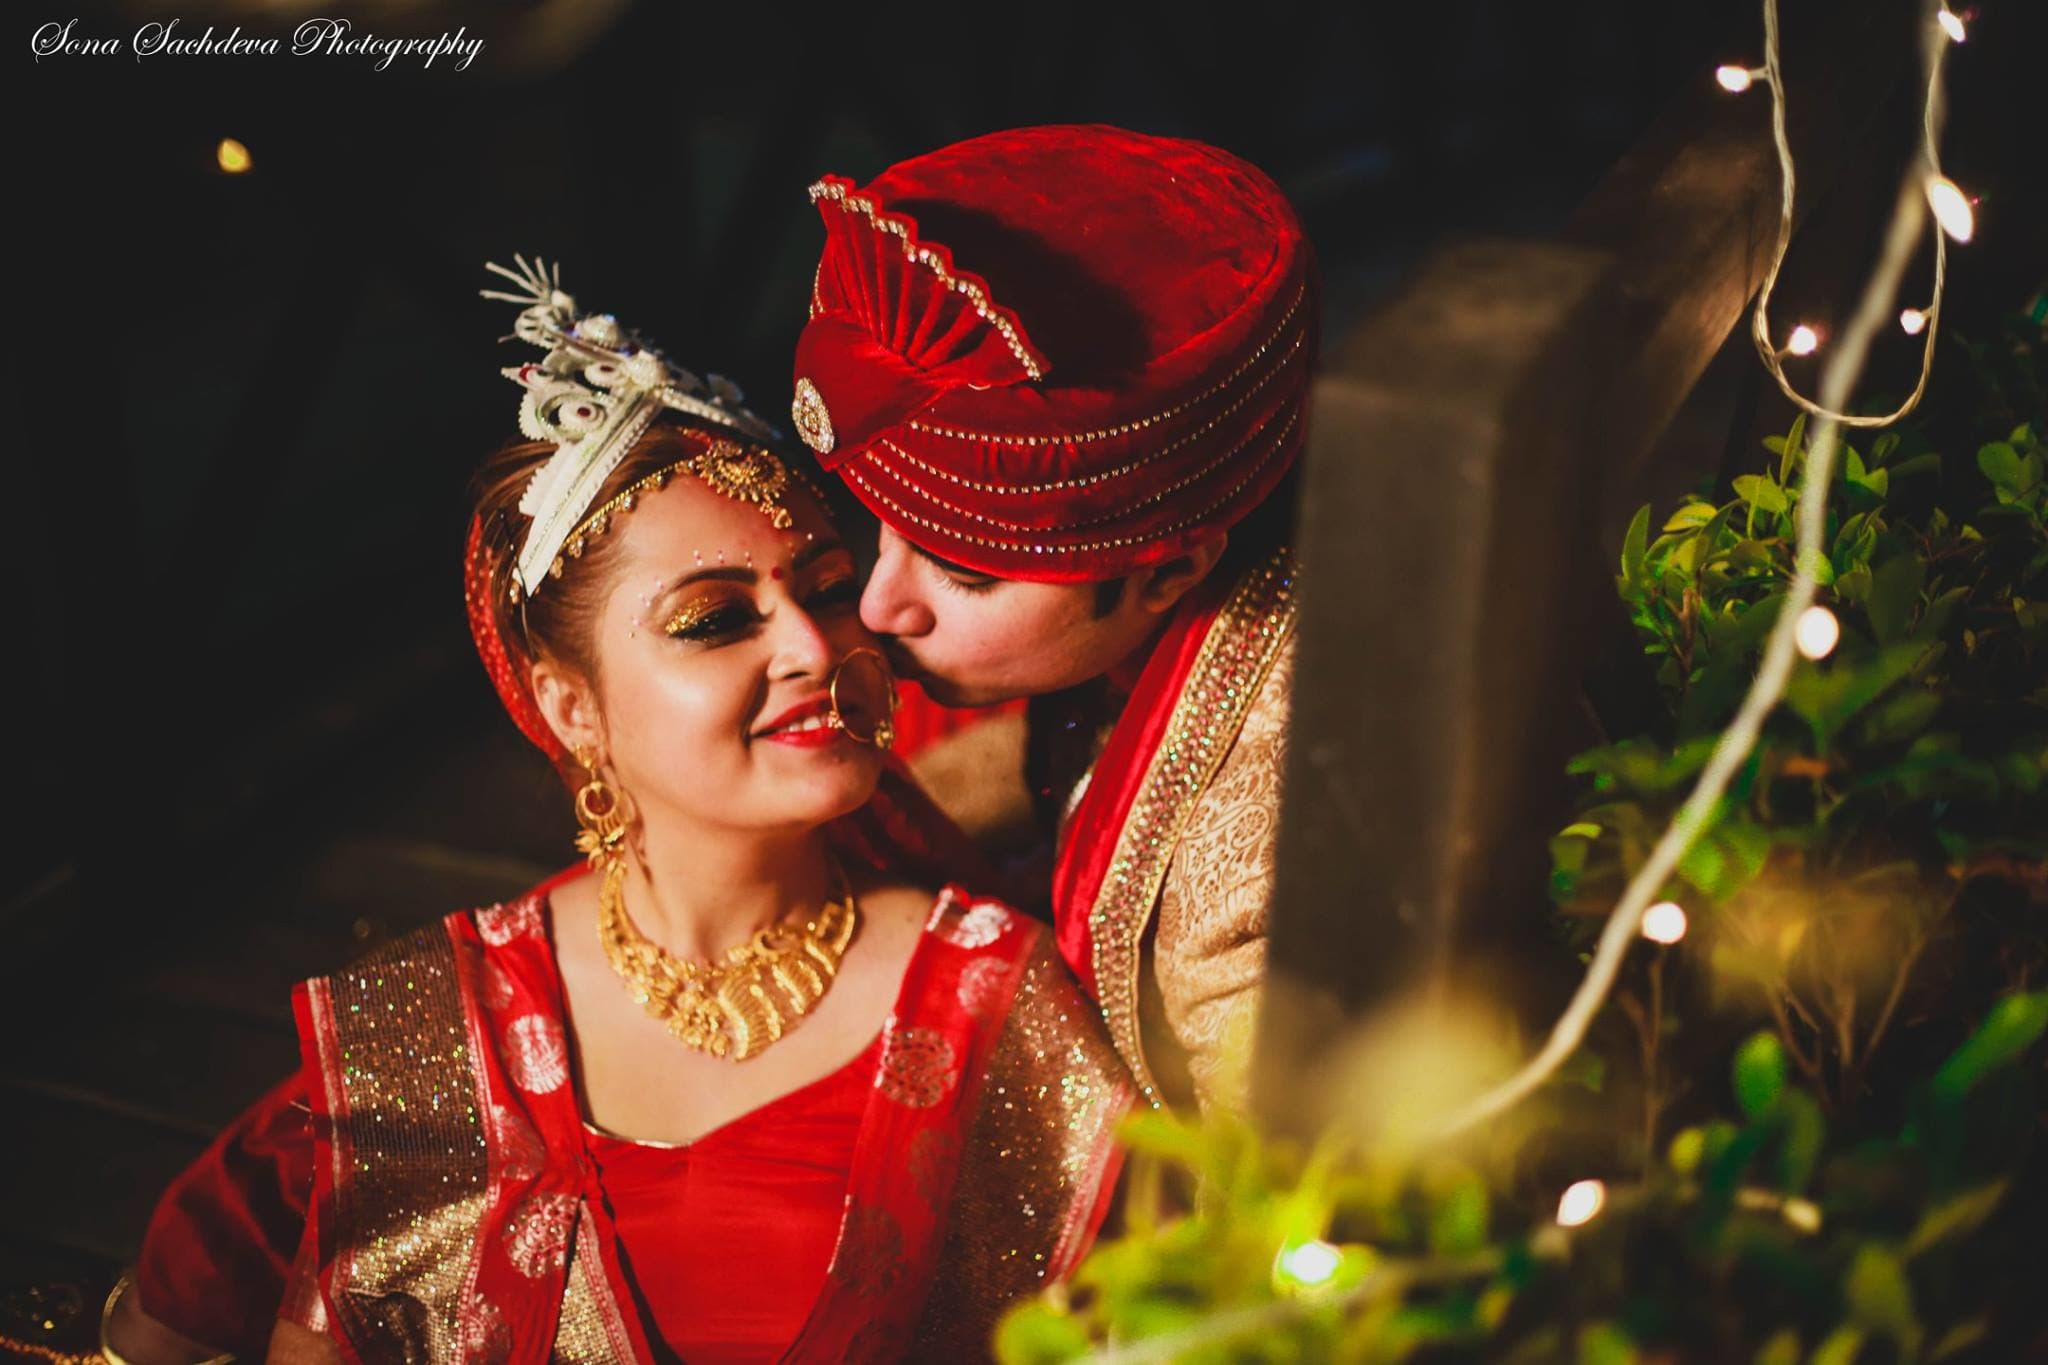 couple photography:sona sachdeva photography